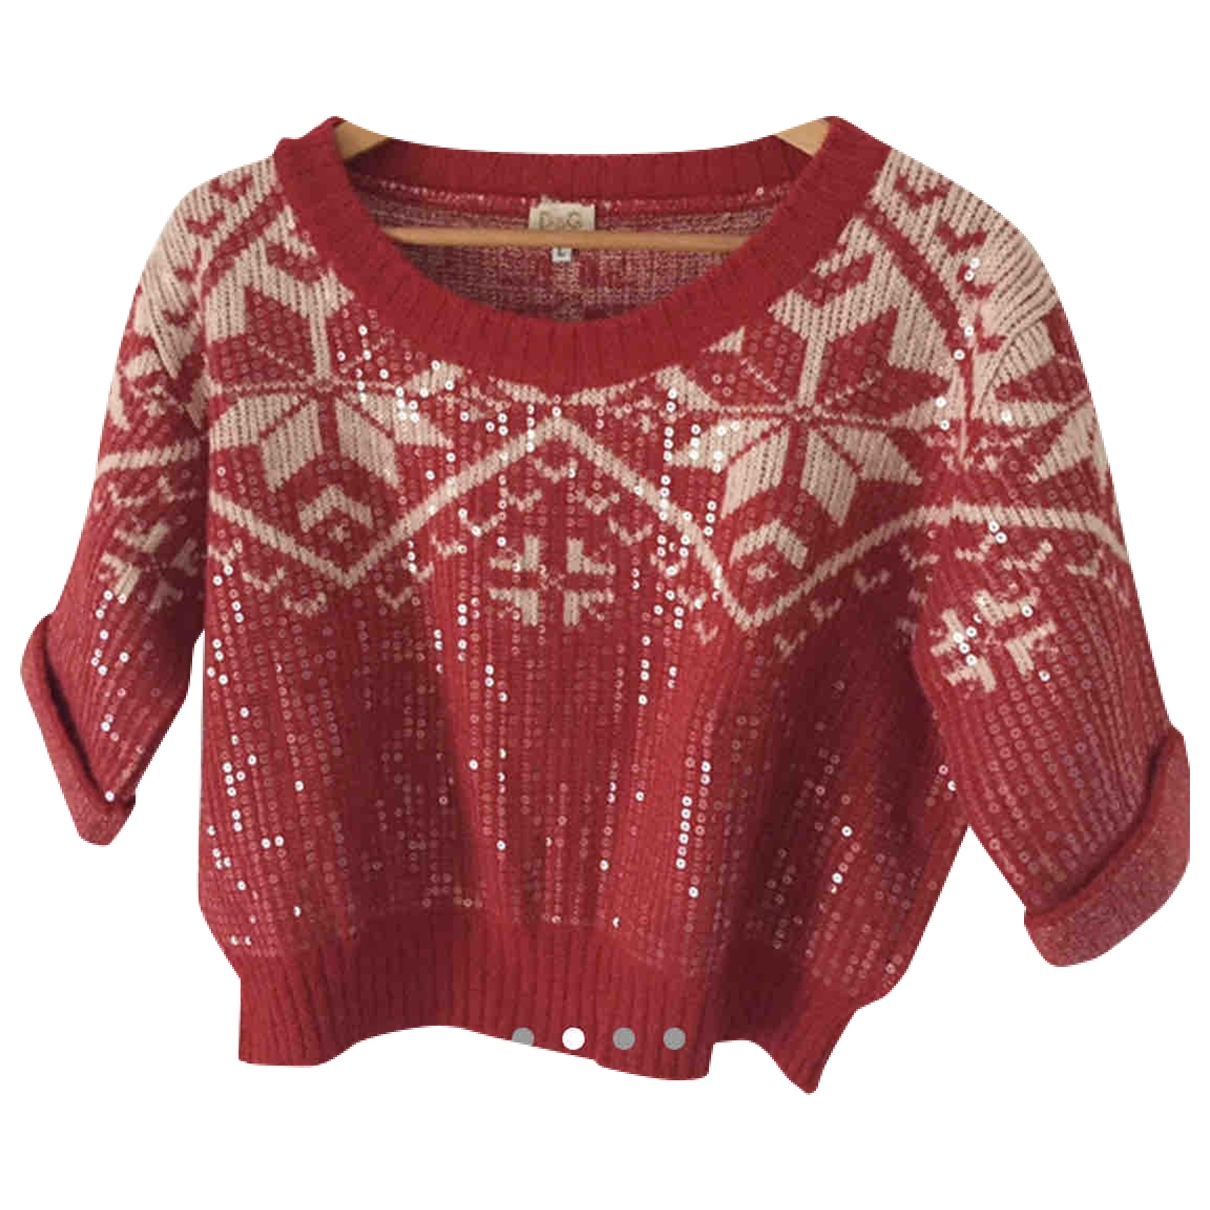 D&g \N Pullover in  Rot Wolle